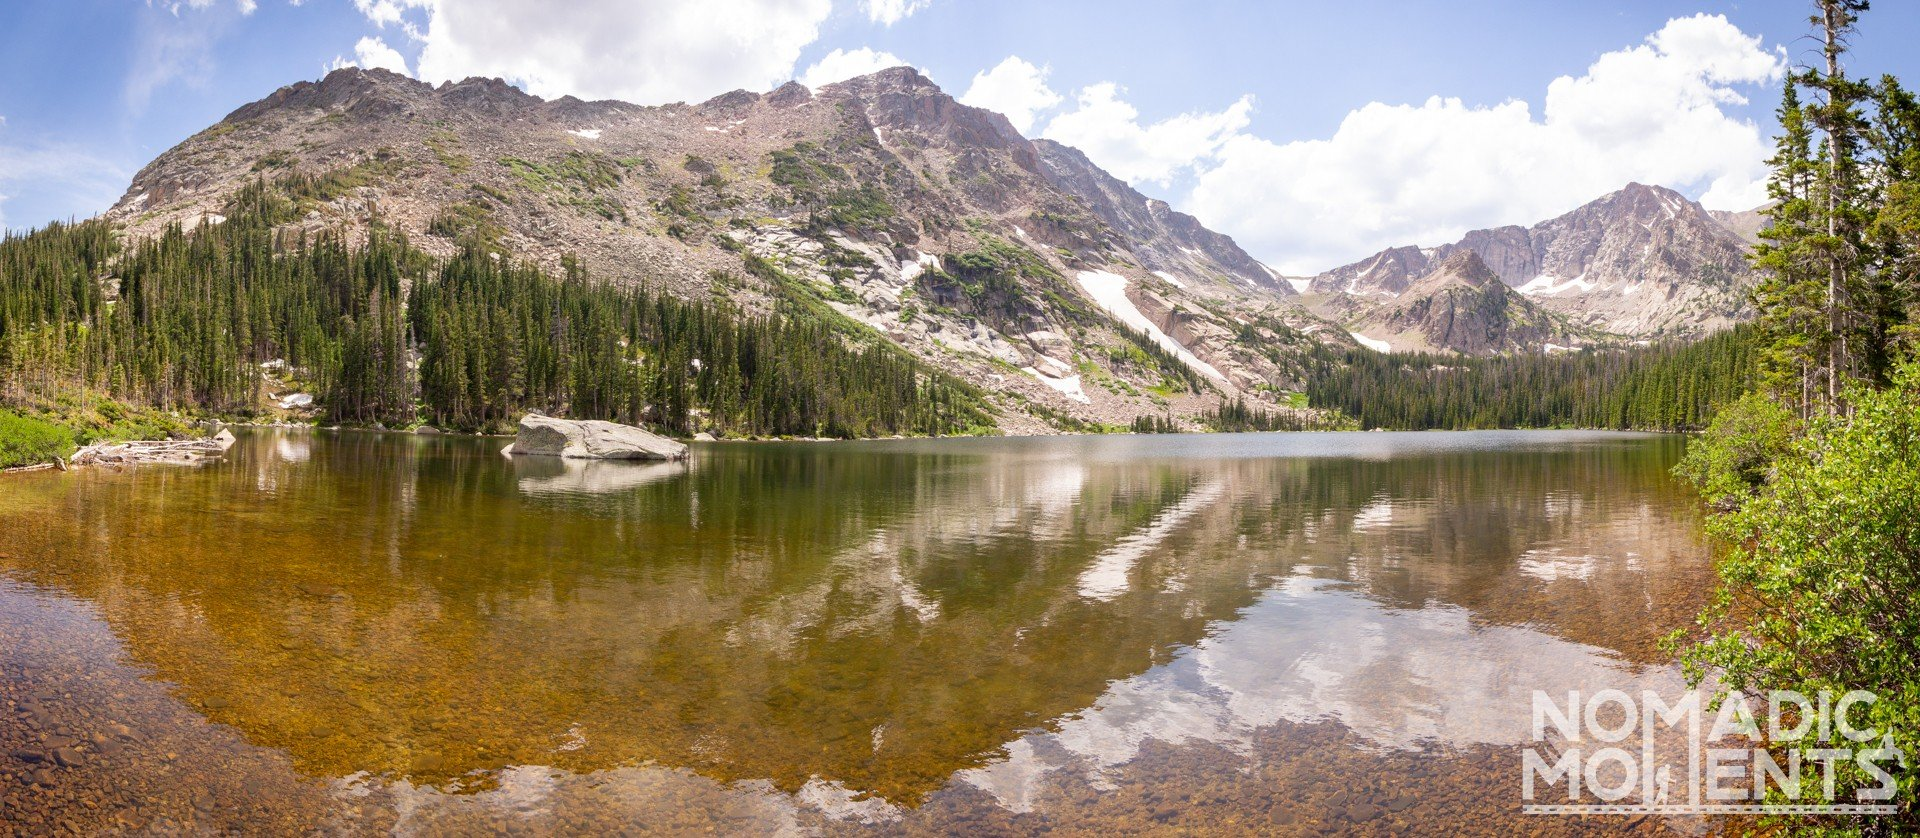 Rocky Mountain National Park's Thunder Lake